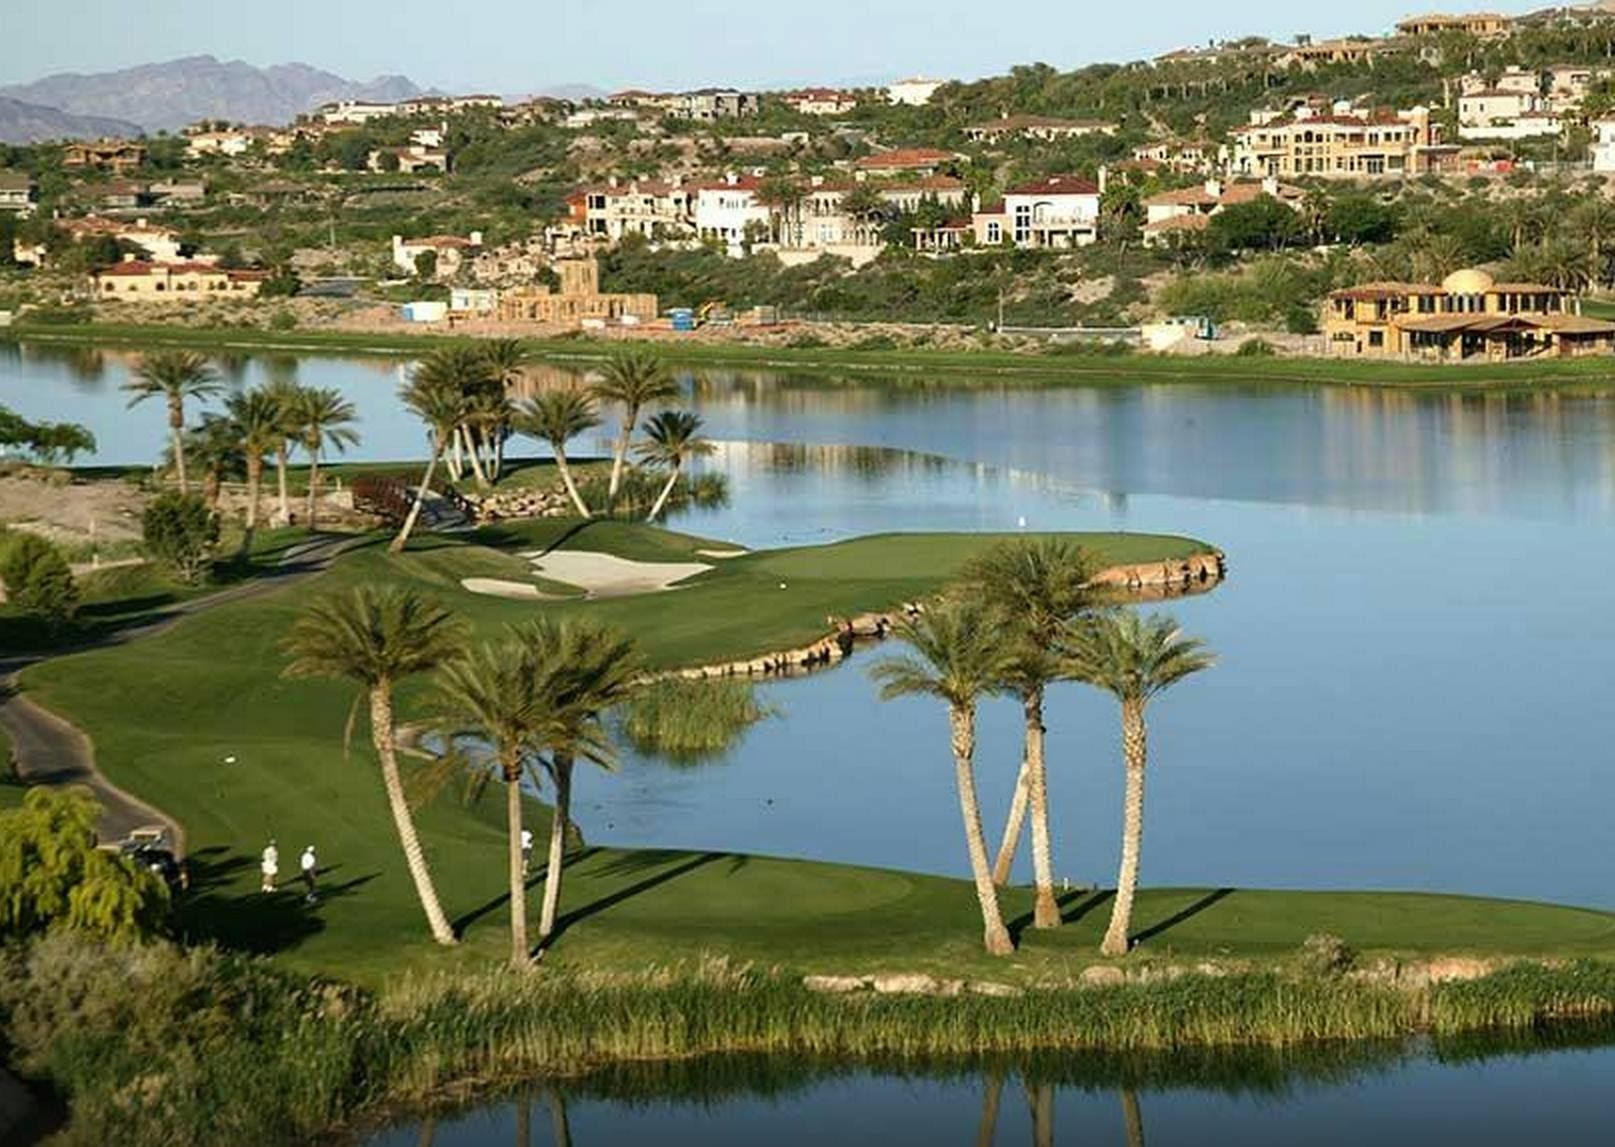 Best Golf Package - Las Vegas Has To Offer